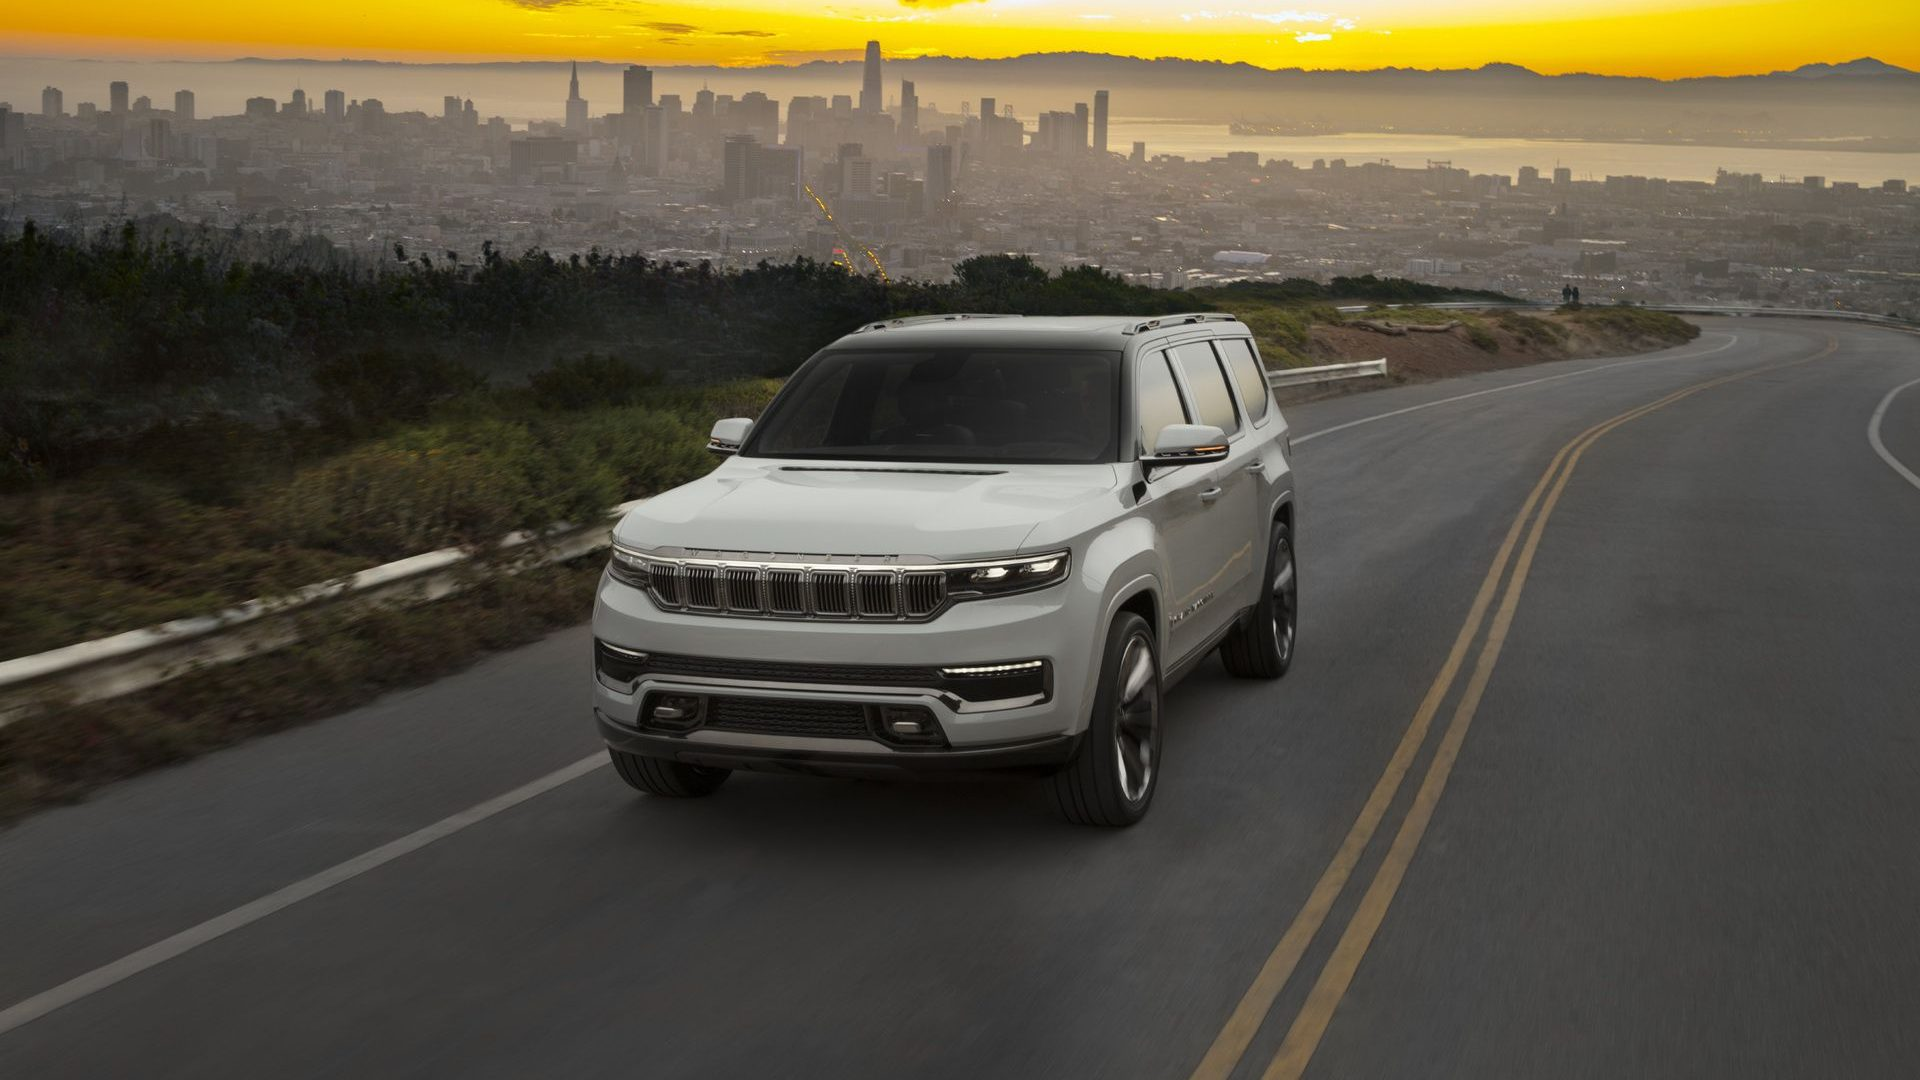 2020-Jeep-Grand-Wagoneer-Concept-02